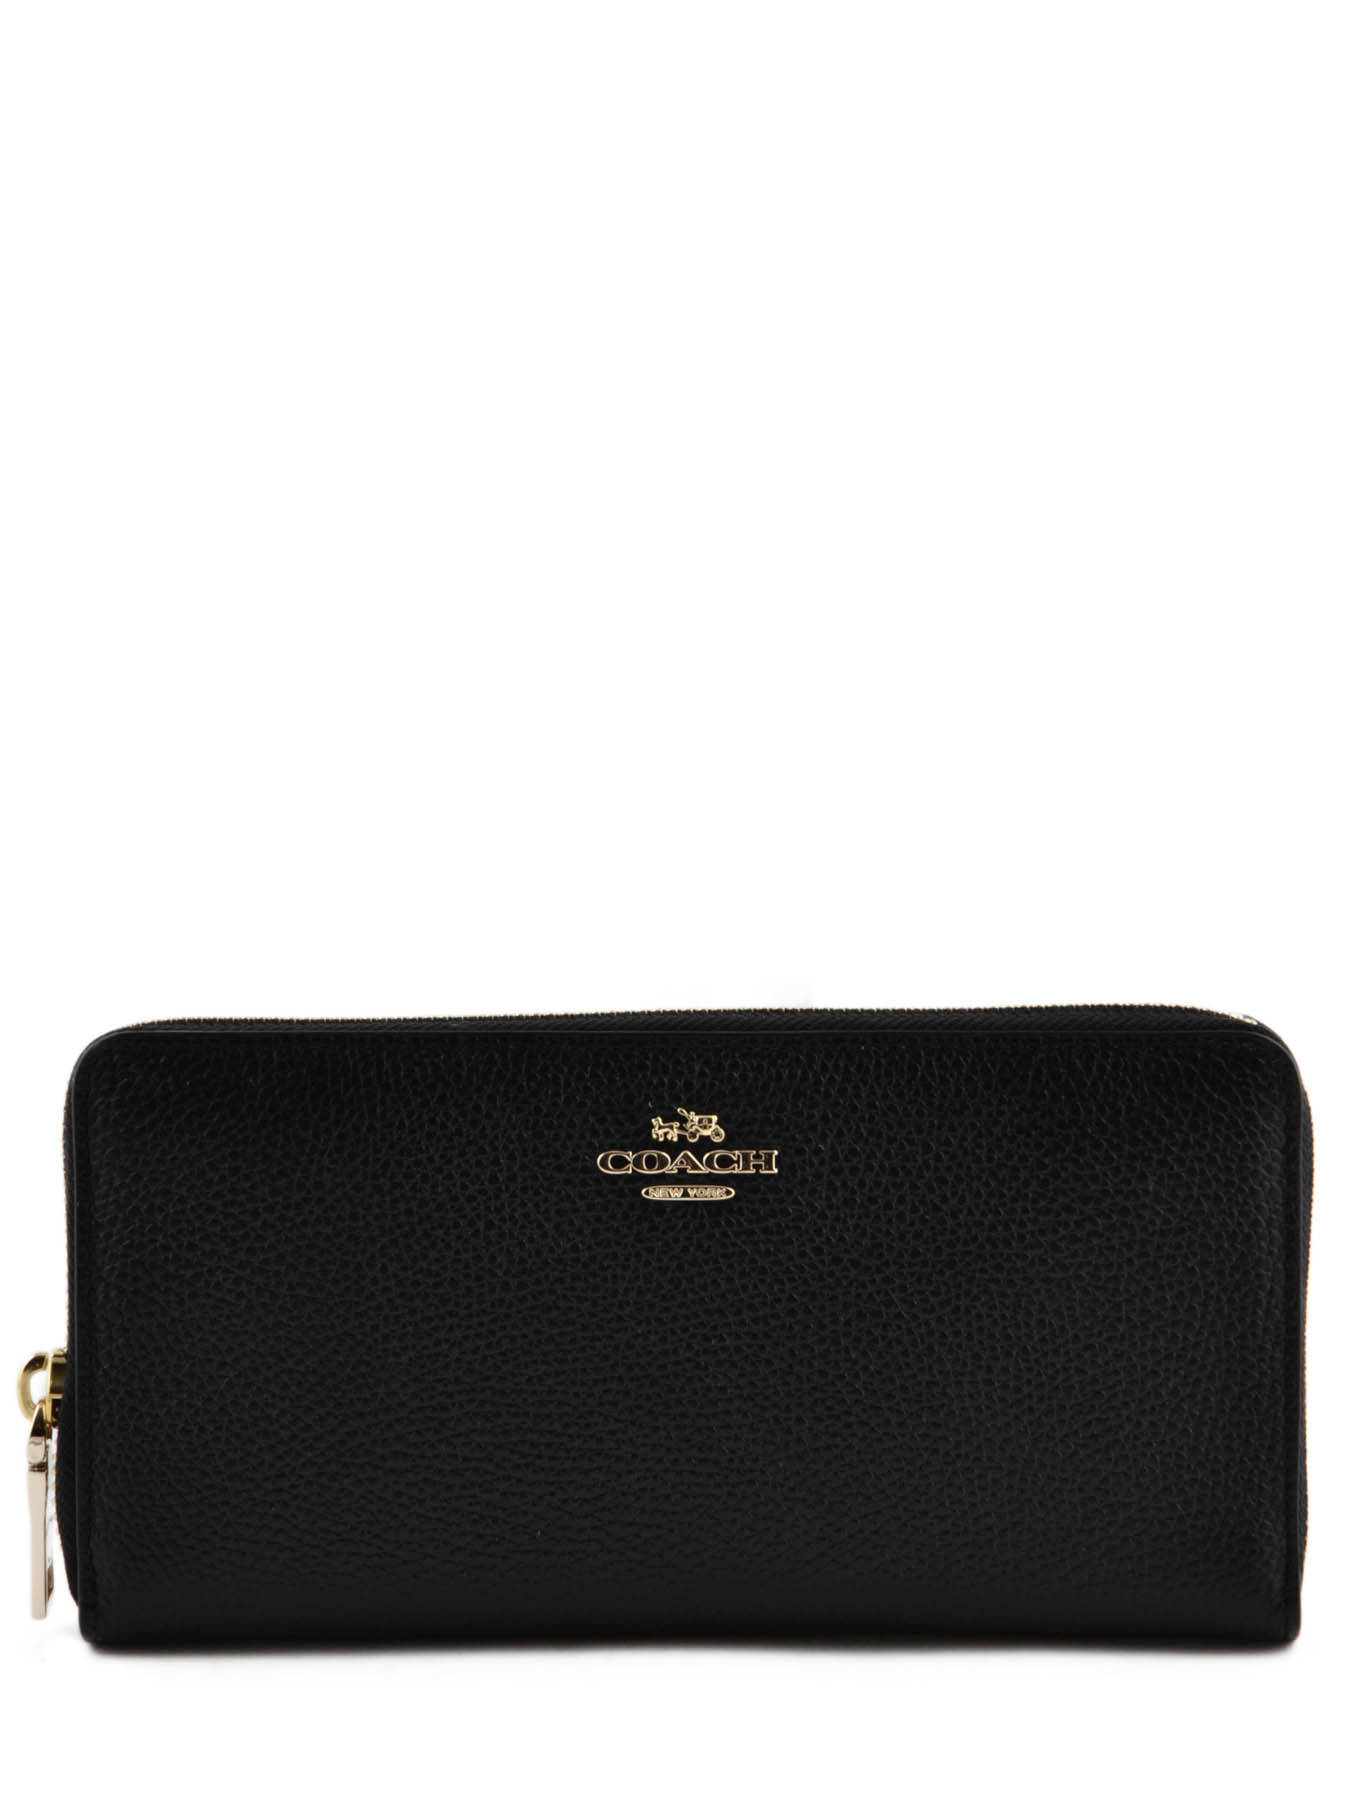 df7a24055998 ... Wallet Leather Coach Black casual 53797 ...